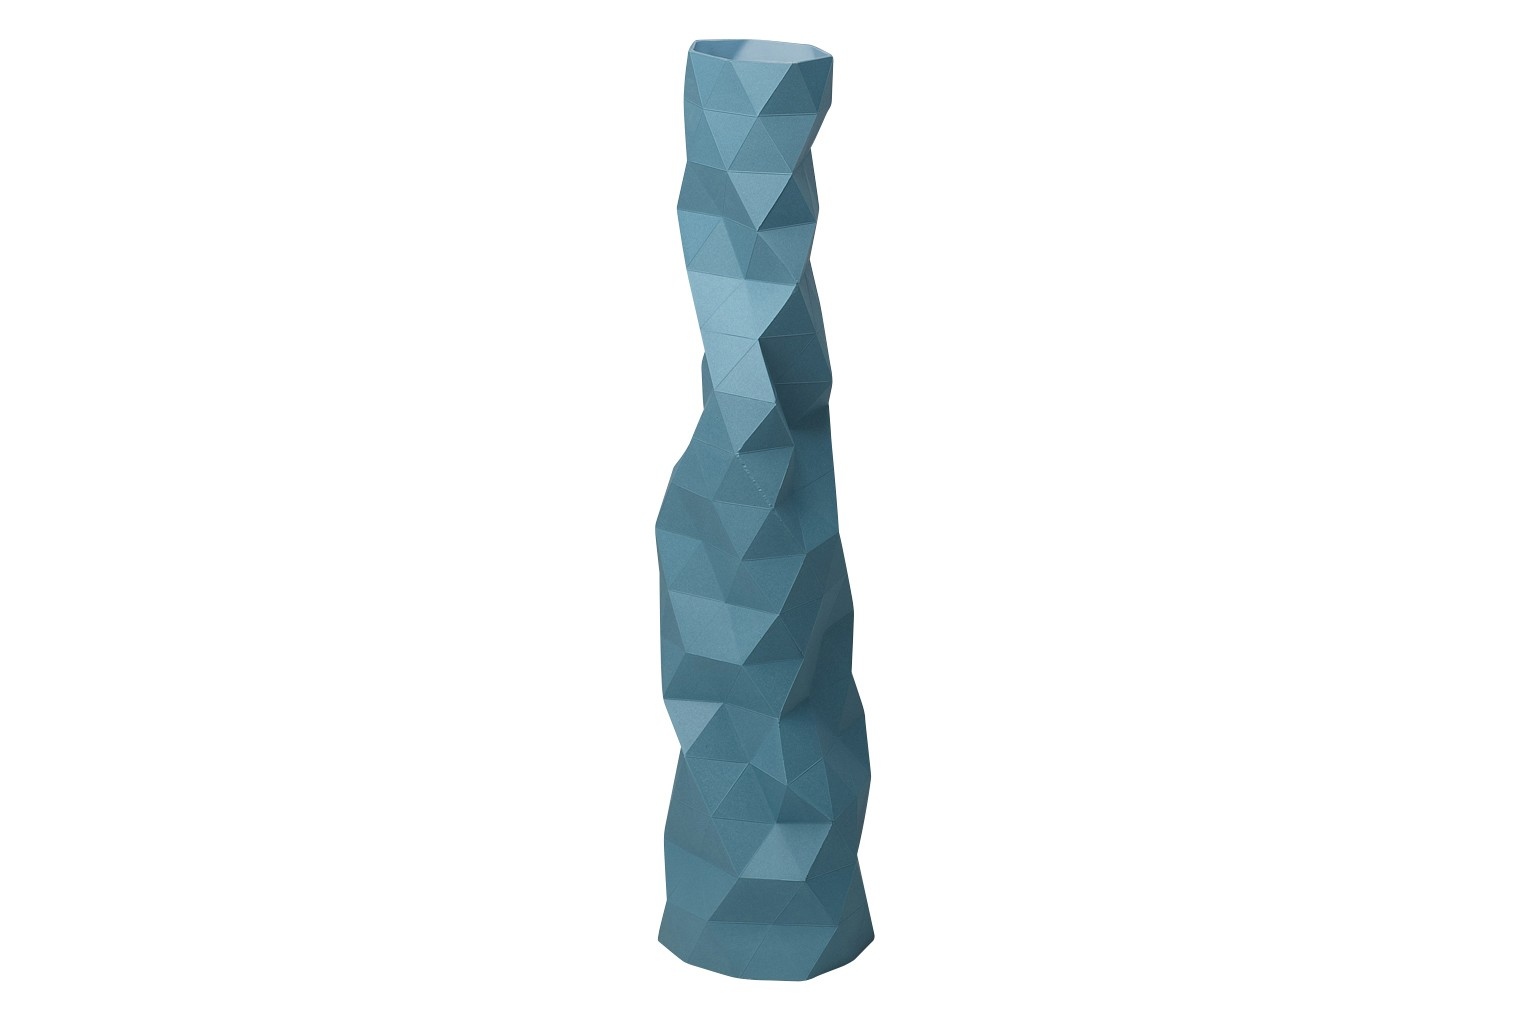 Faceture Vase Blue, Small